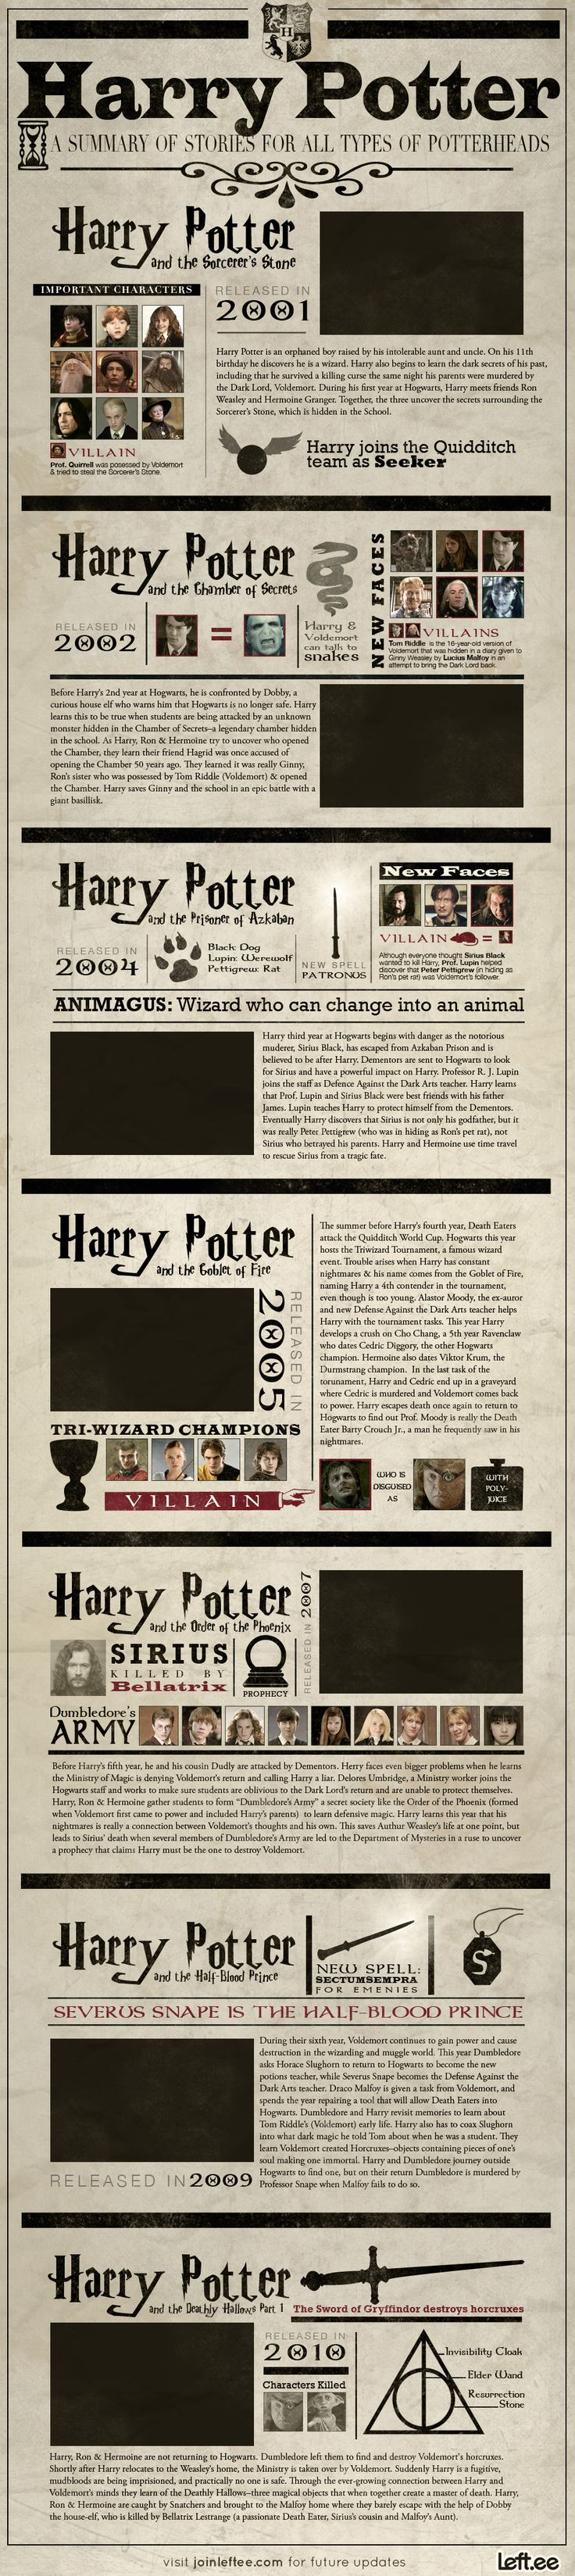 For all those who love Harry Potter, and those who have friends who love Harry Potter, an infographic summarizing the first 7 films so you're up to sp